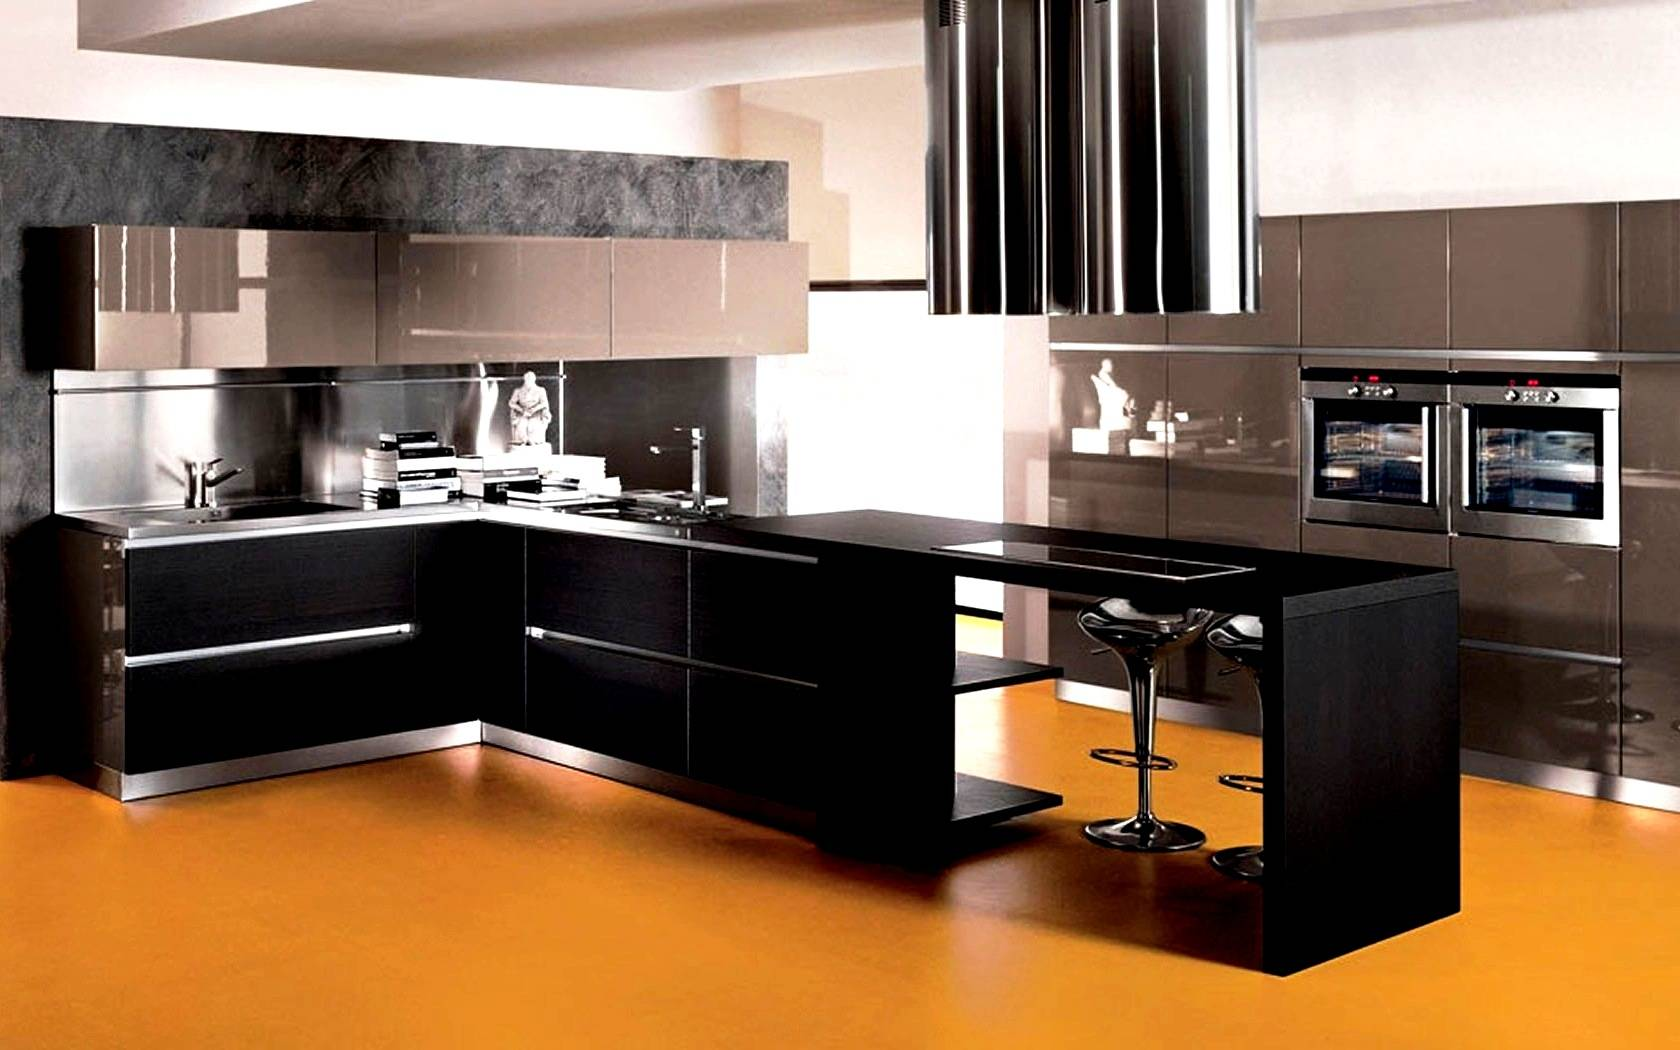 Modular Kitchen Design For L Shape 25 43 Latest Design Ideas Of Modular Kitchen Pictures